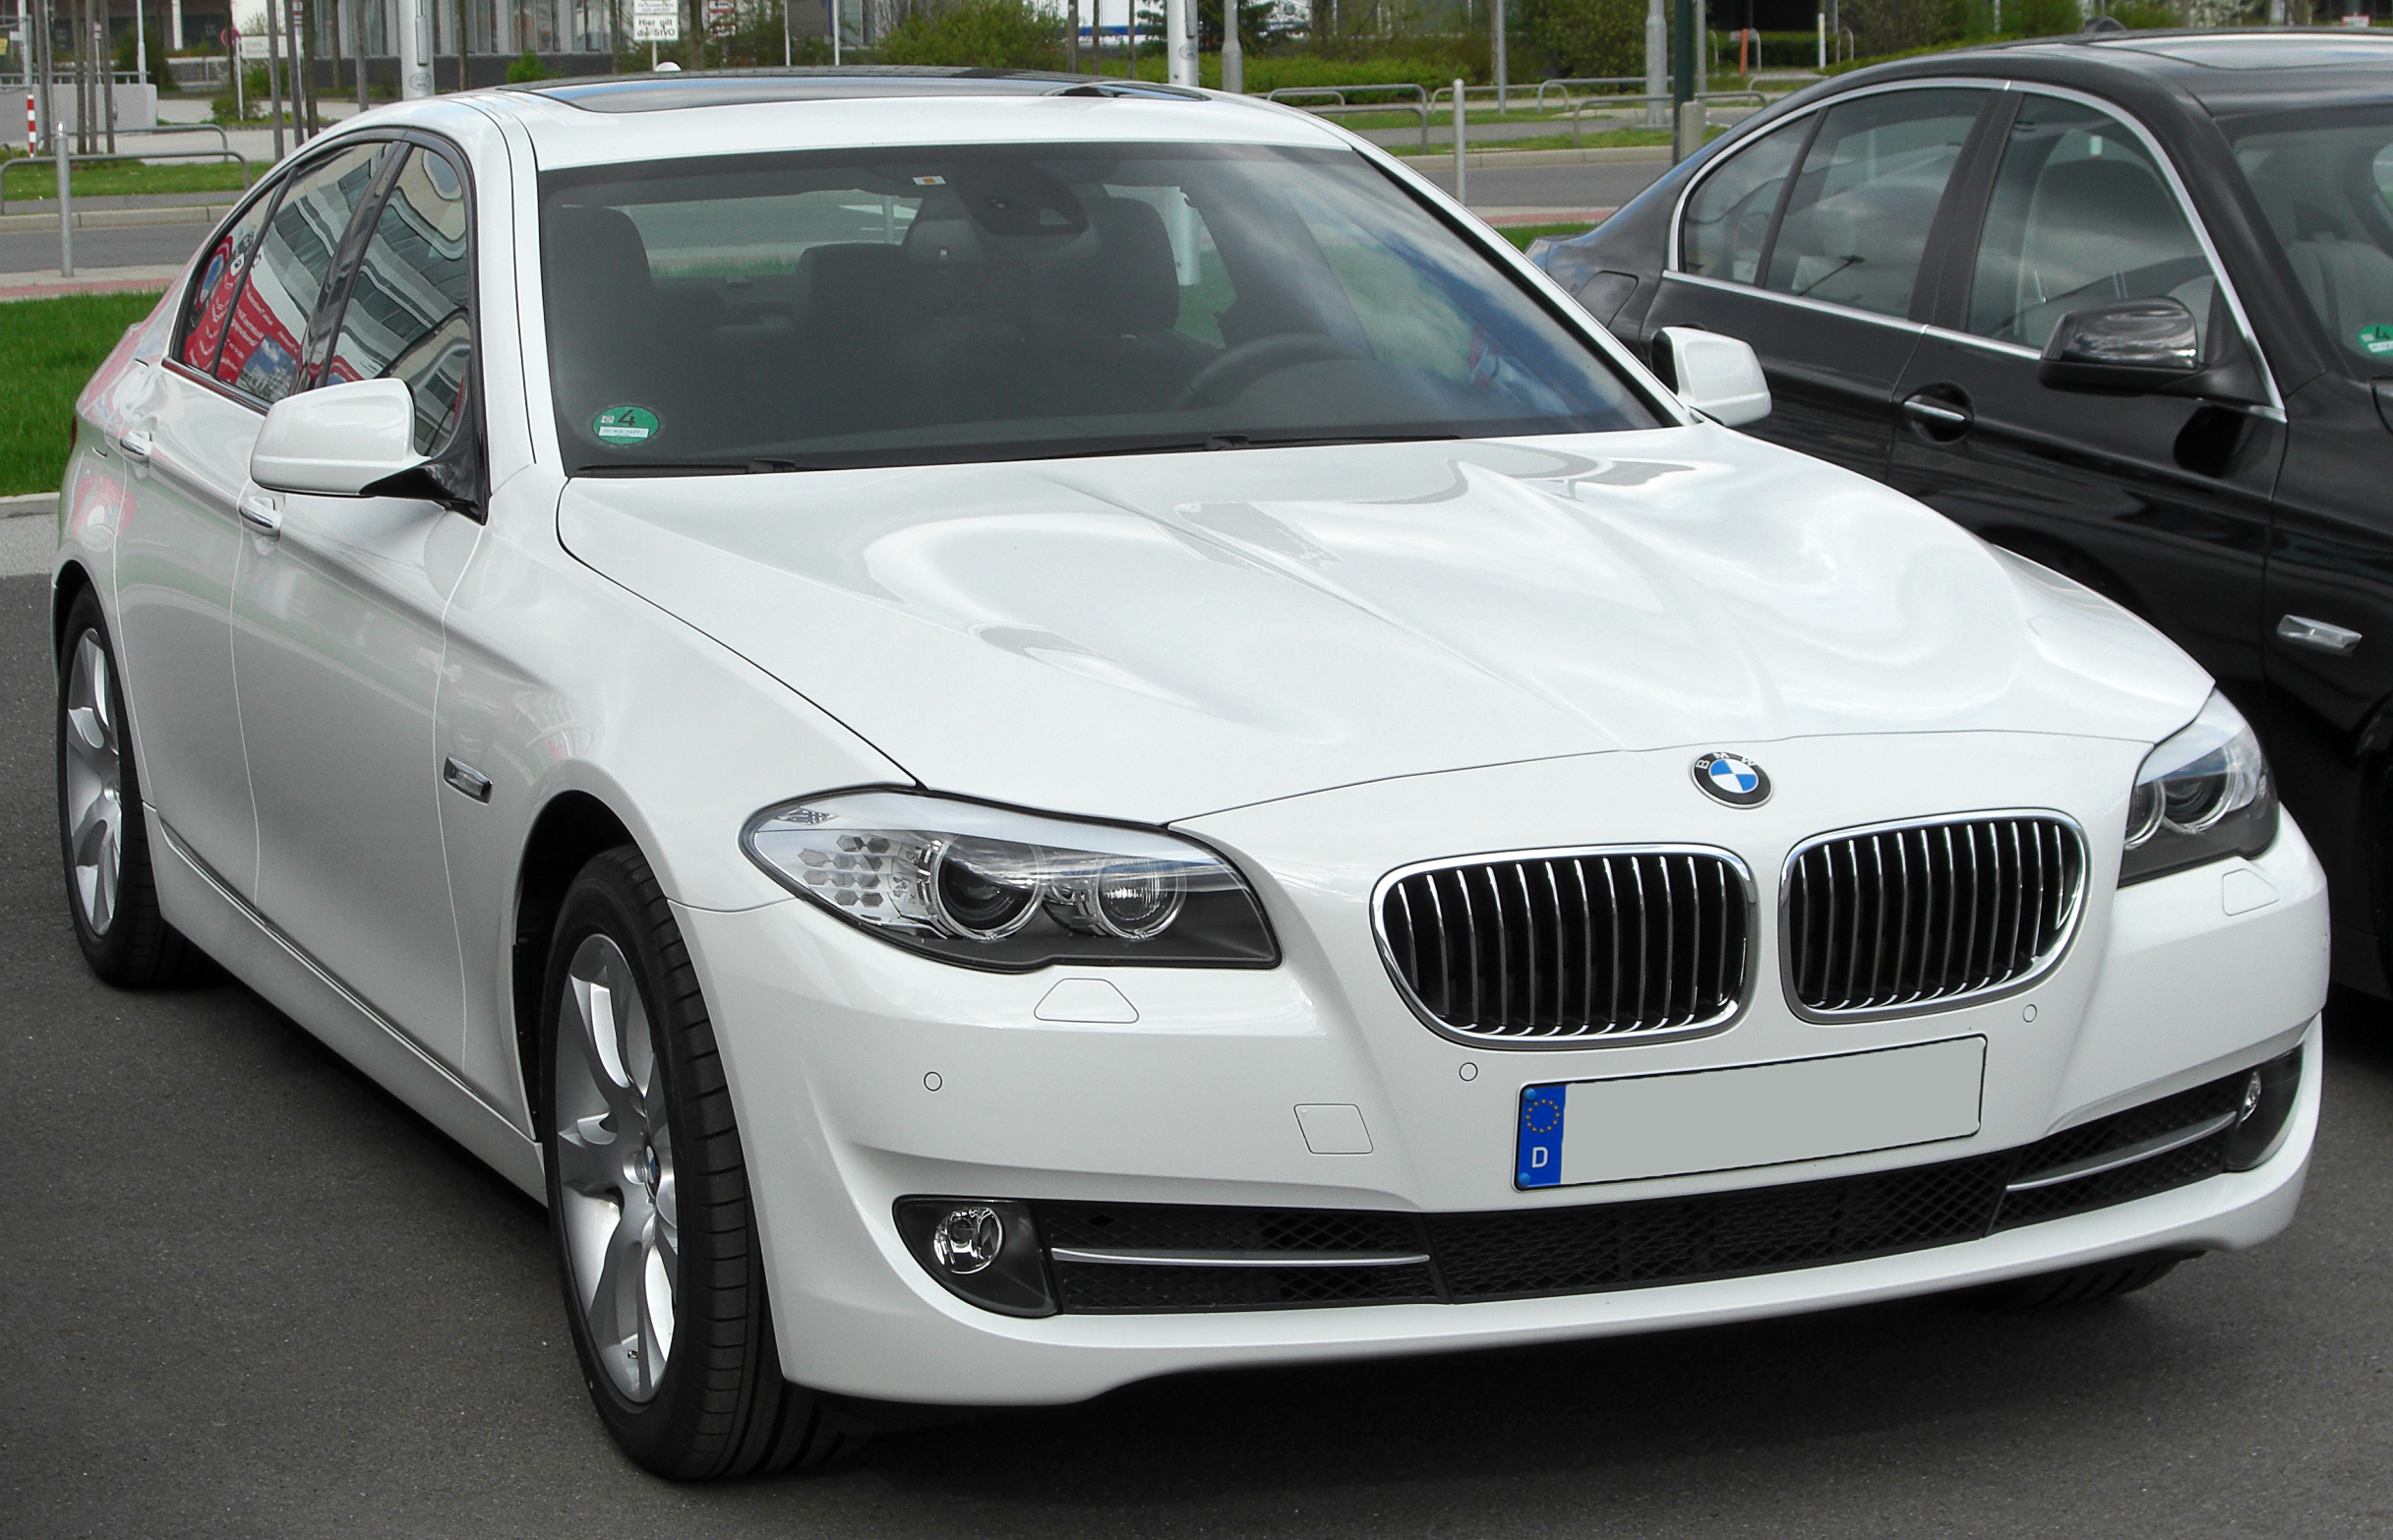 File:BMW 525d (F10) front 20100410.jpg - Wikimedia Commons